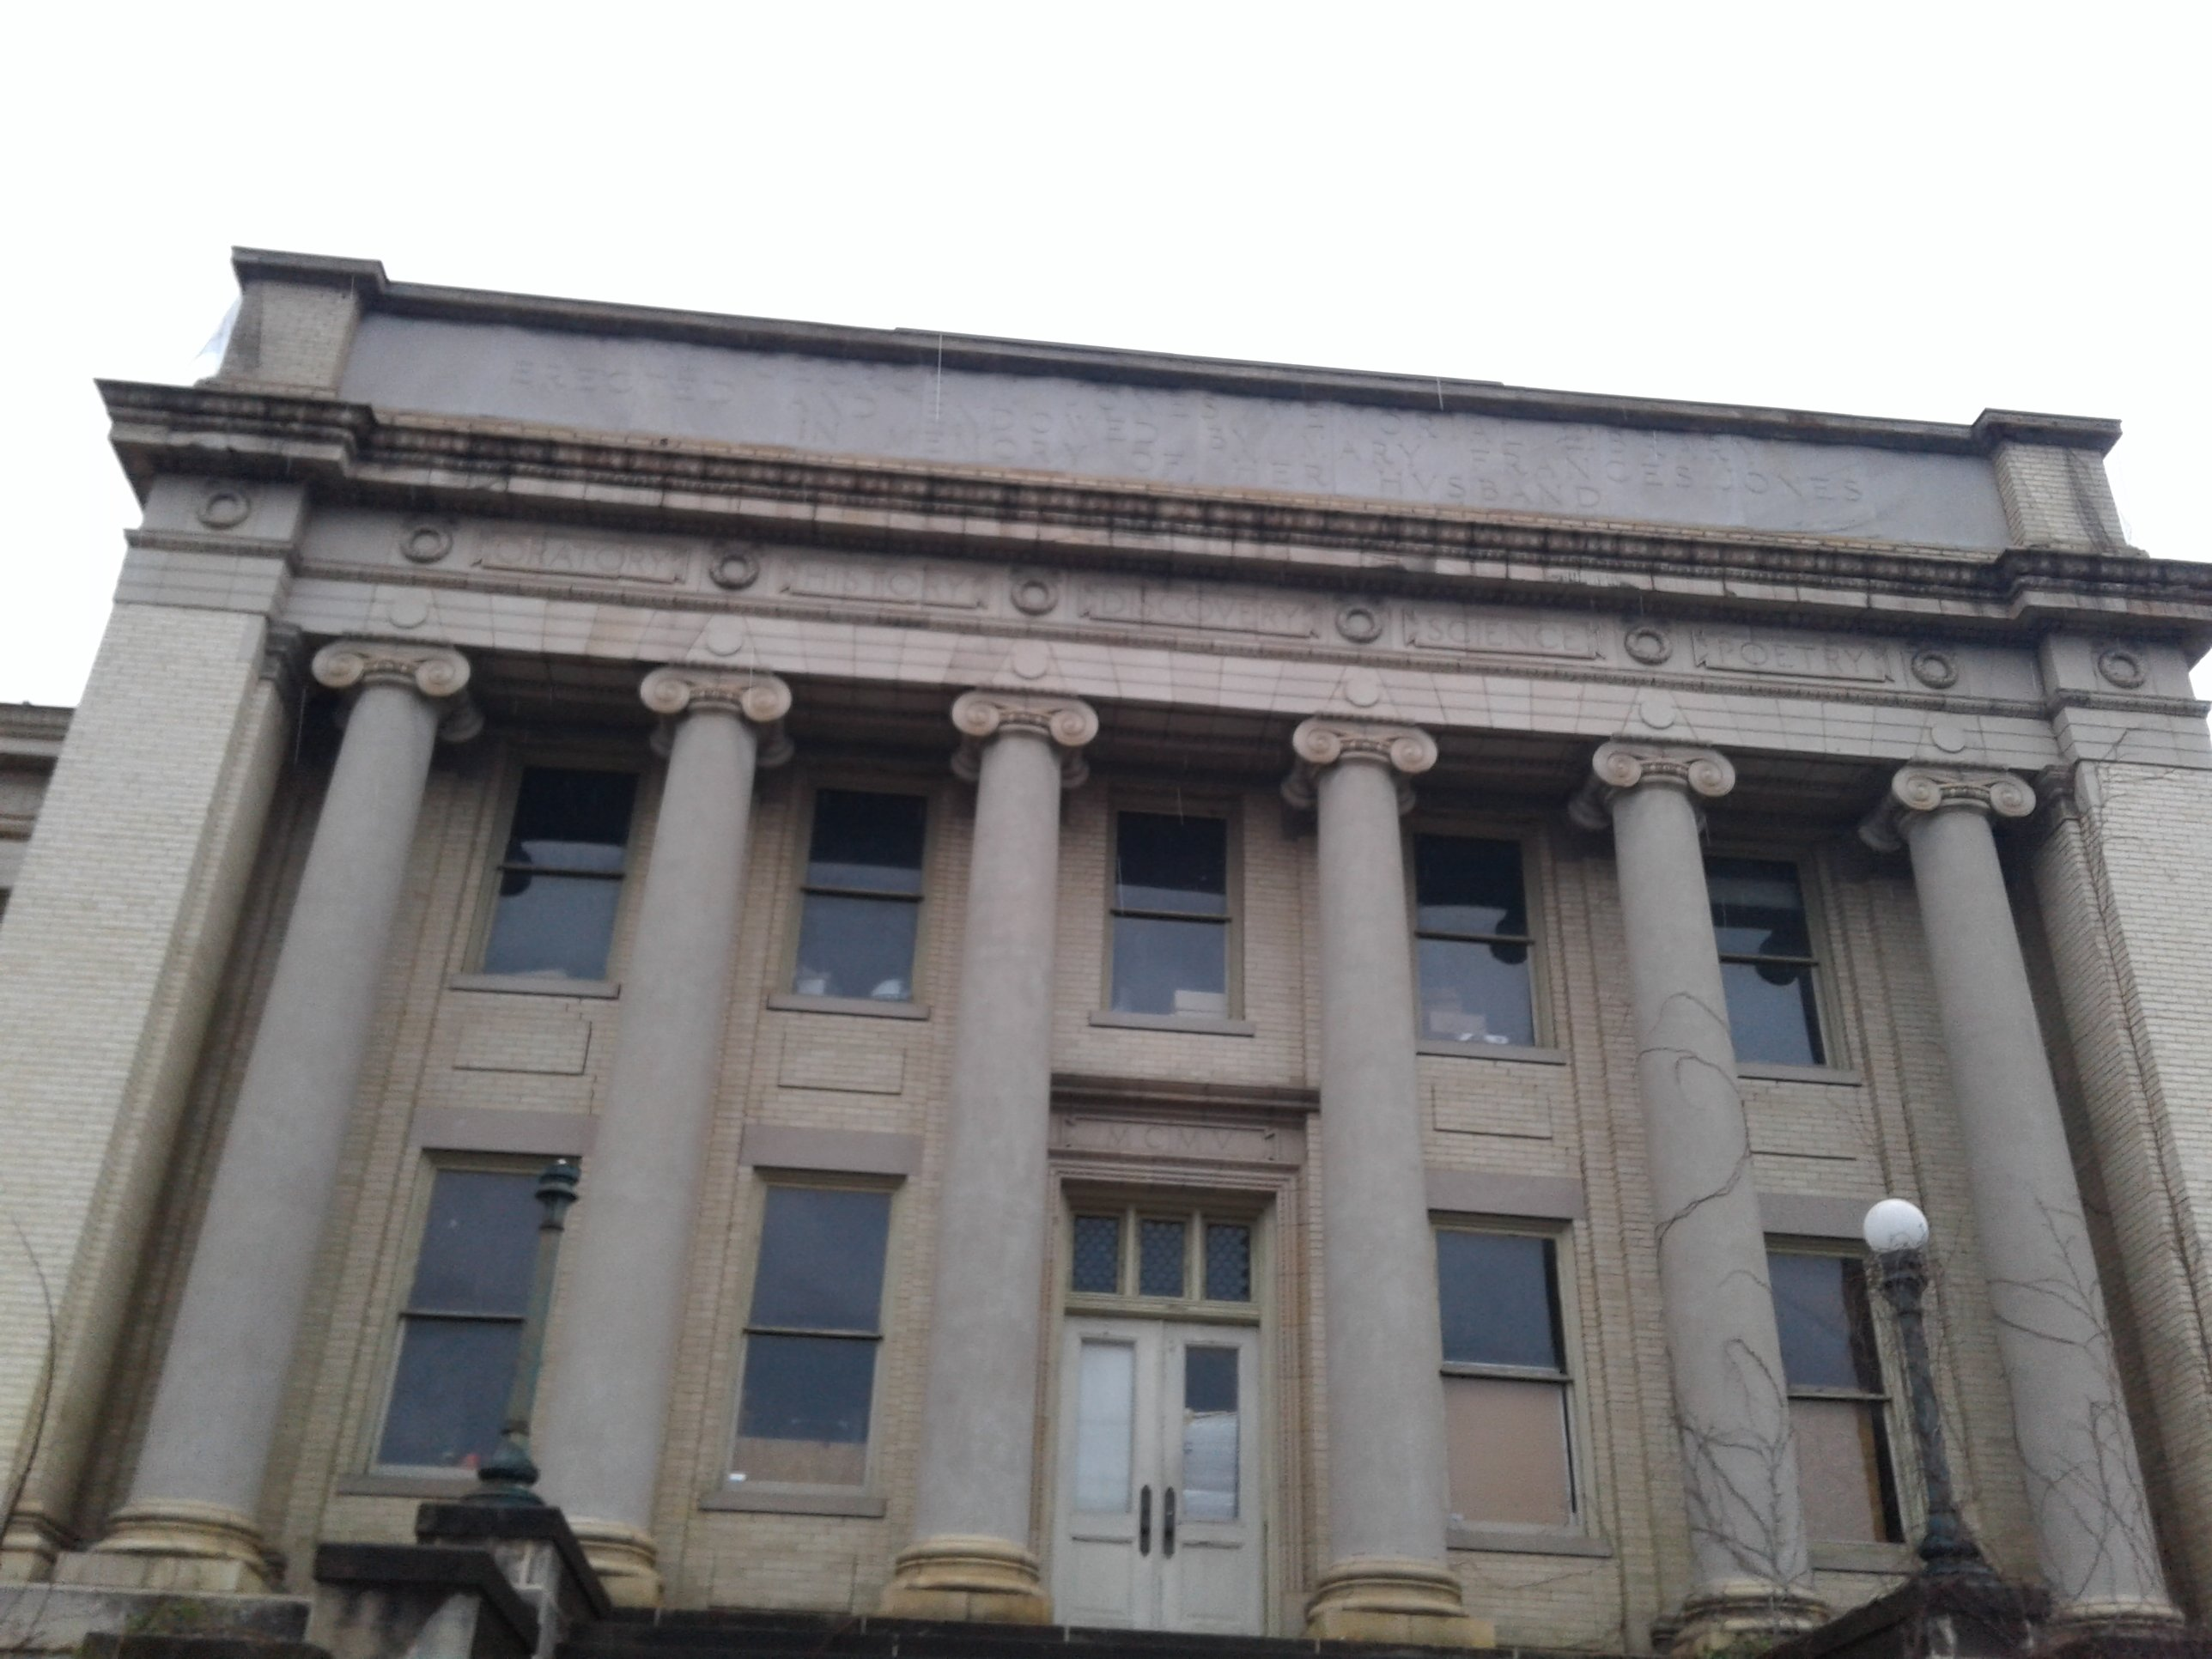 """Front face/entrance of Historic Jones Memorial Library. Top section of building has engraving that states, """"George M. Jones Memorial Library Erected and Endowed by Mary Frances Jones in Memory of Her Husband."""""""